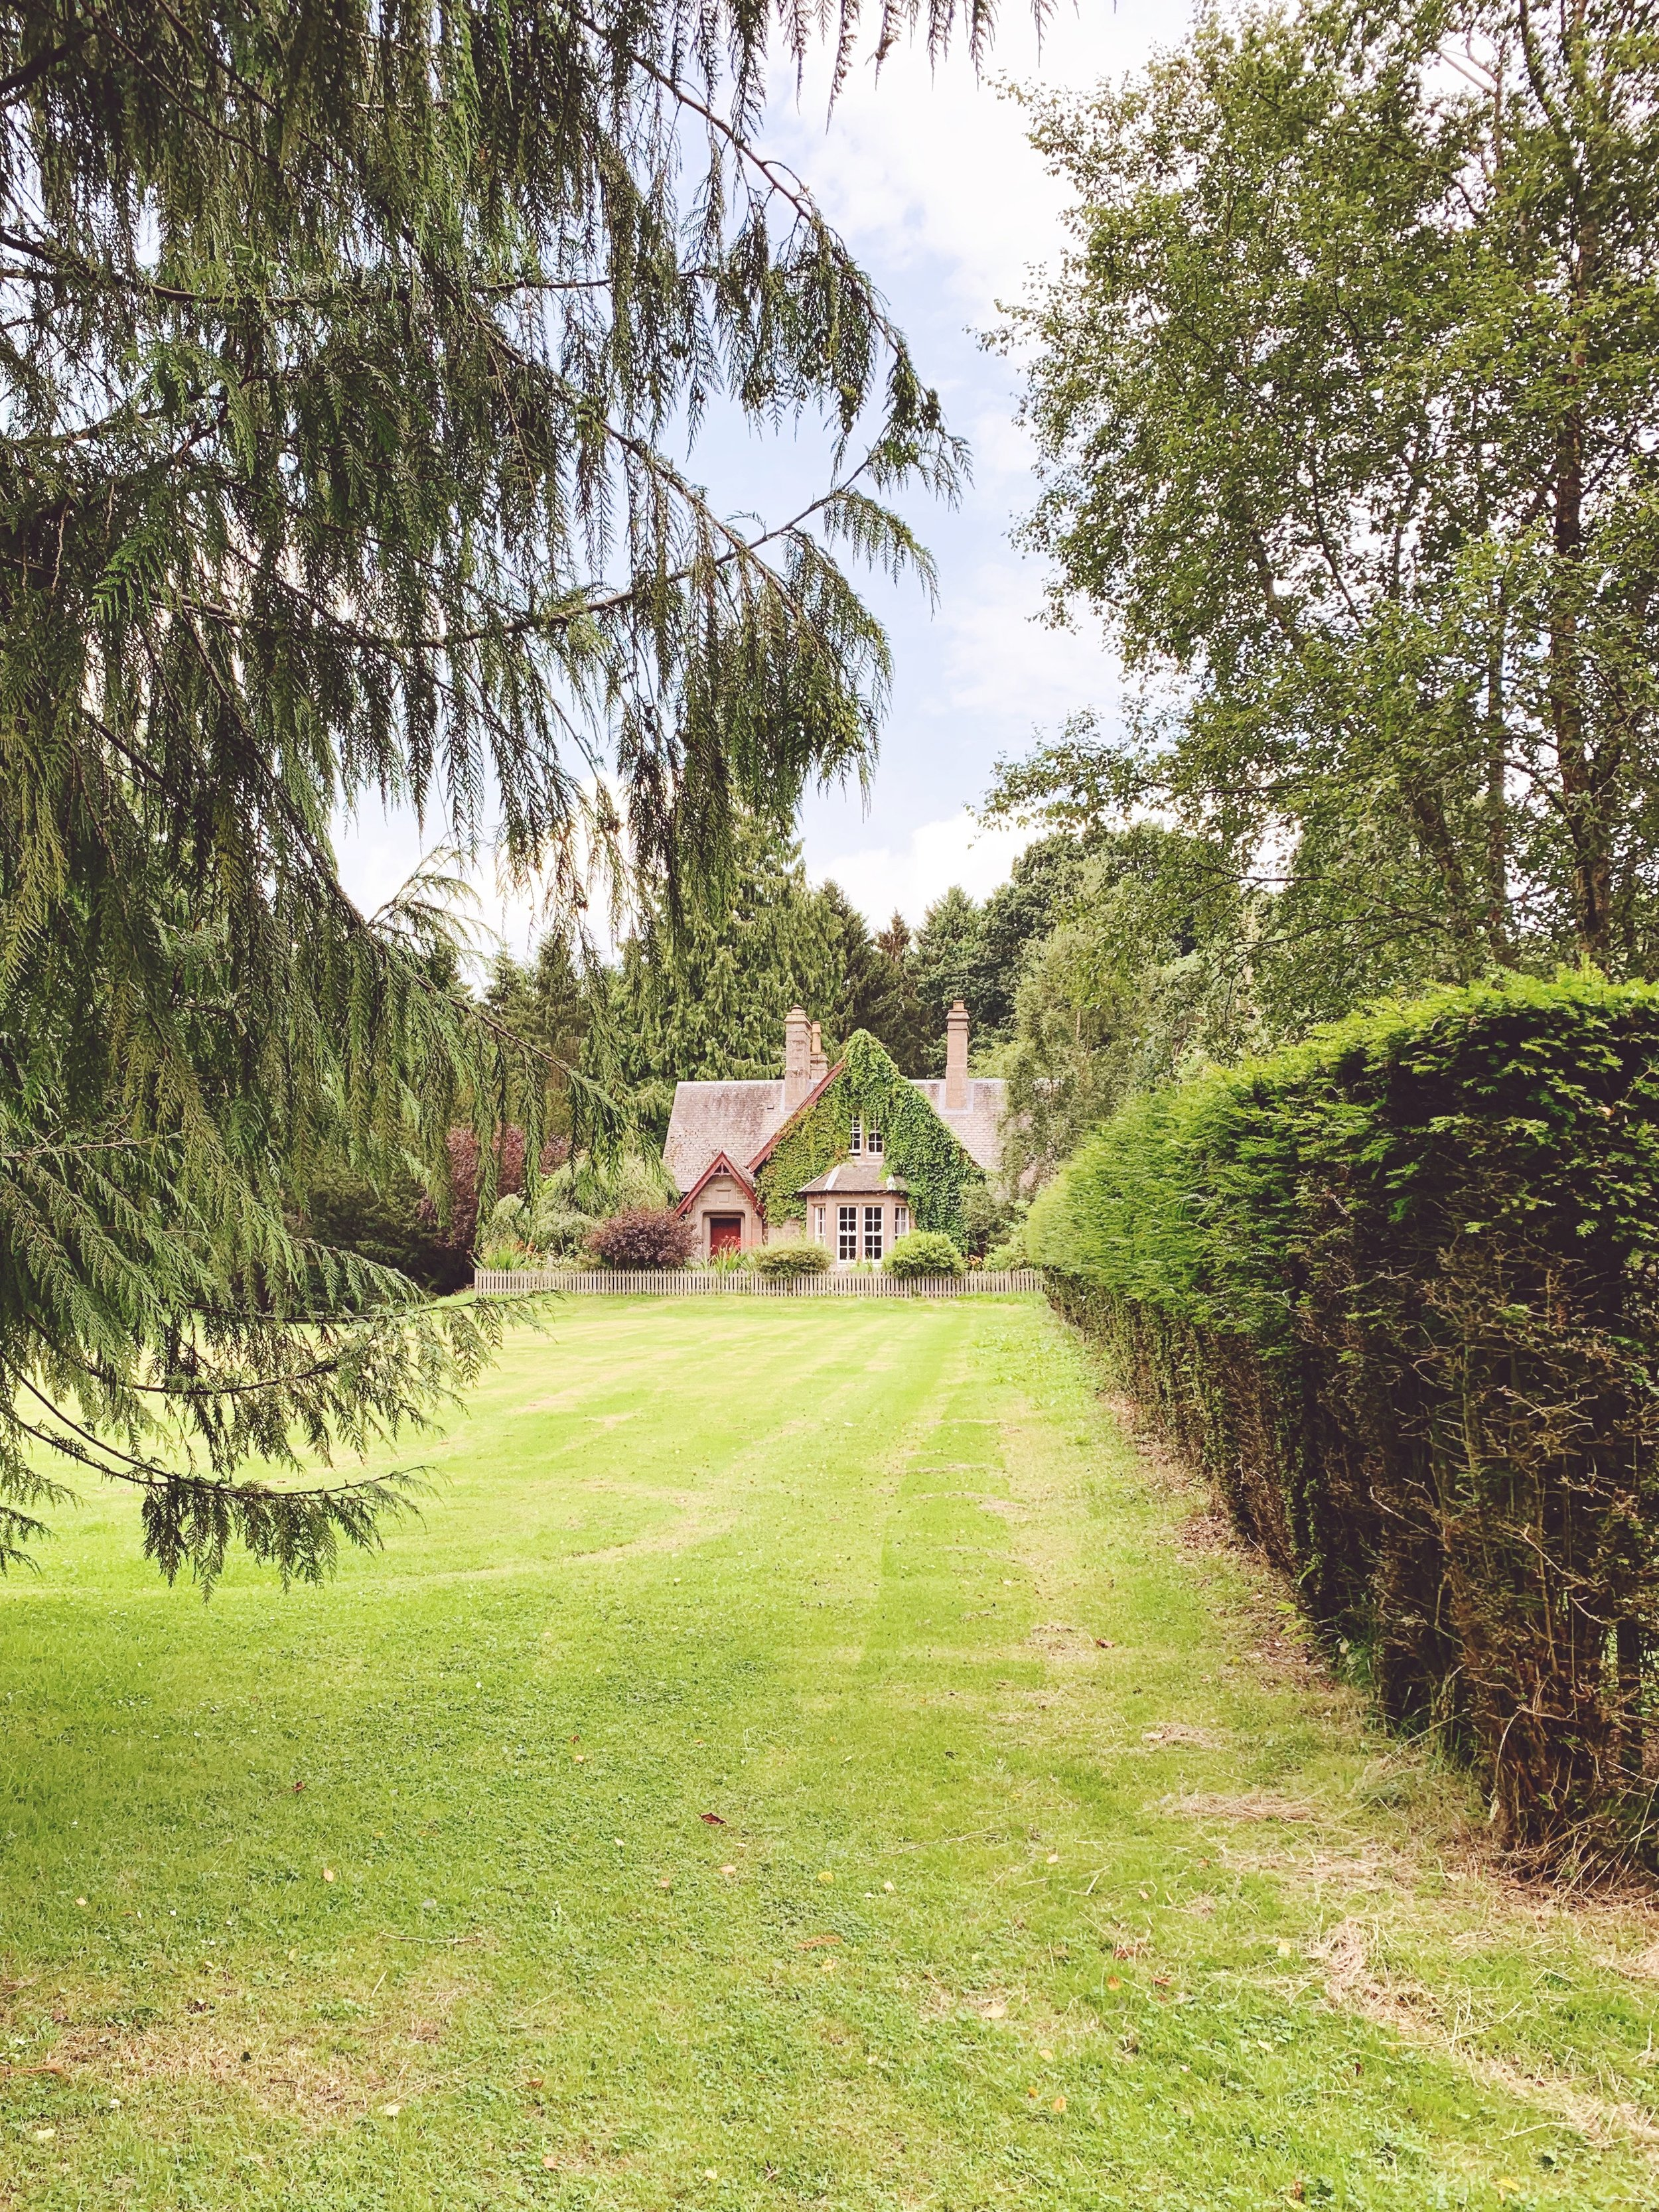 Cottage on the grounds of Glamis Castle